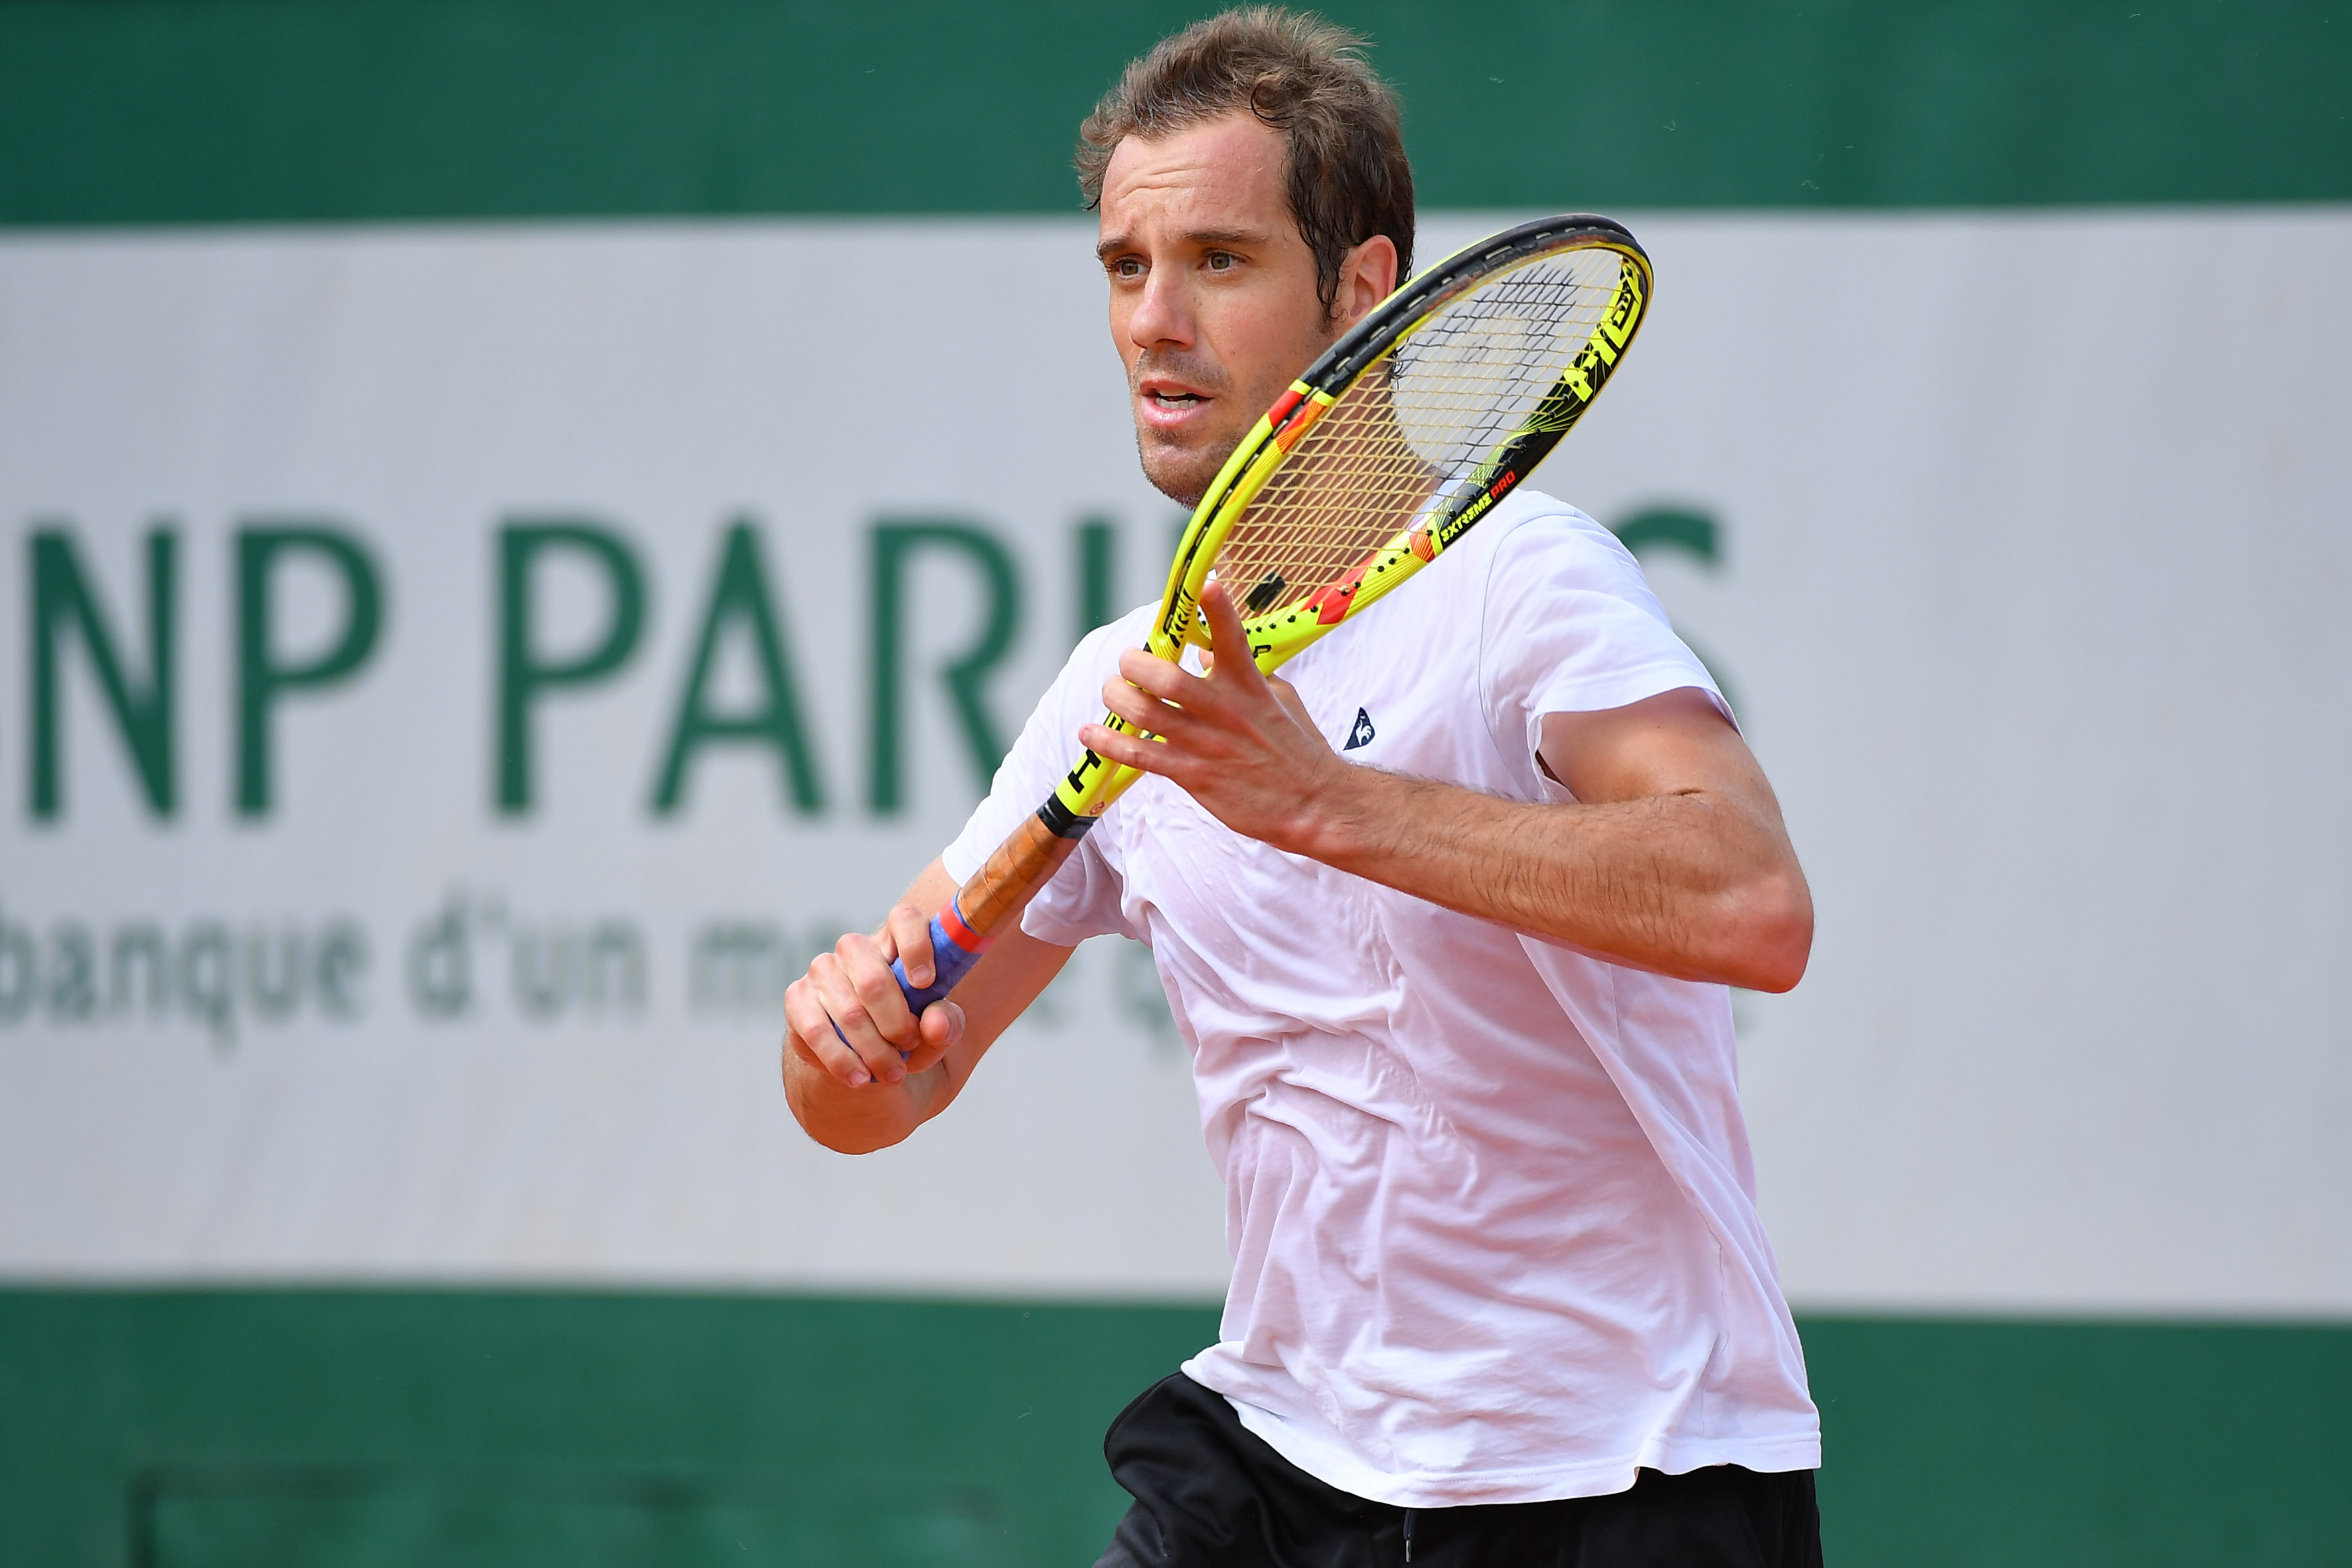 Tennis - Roland-Garros - Roland-Garros: Gasquet-De Greef en direct